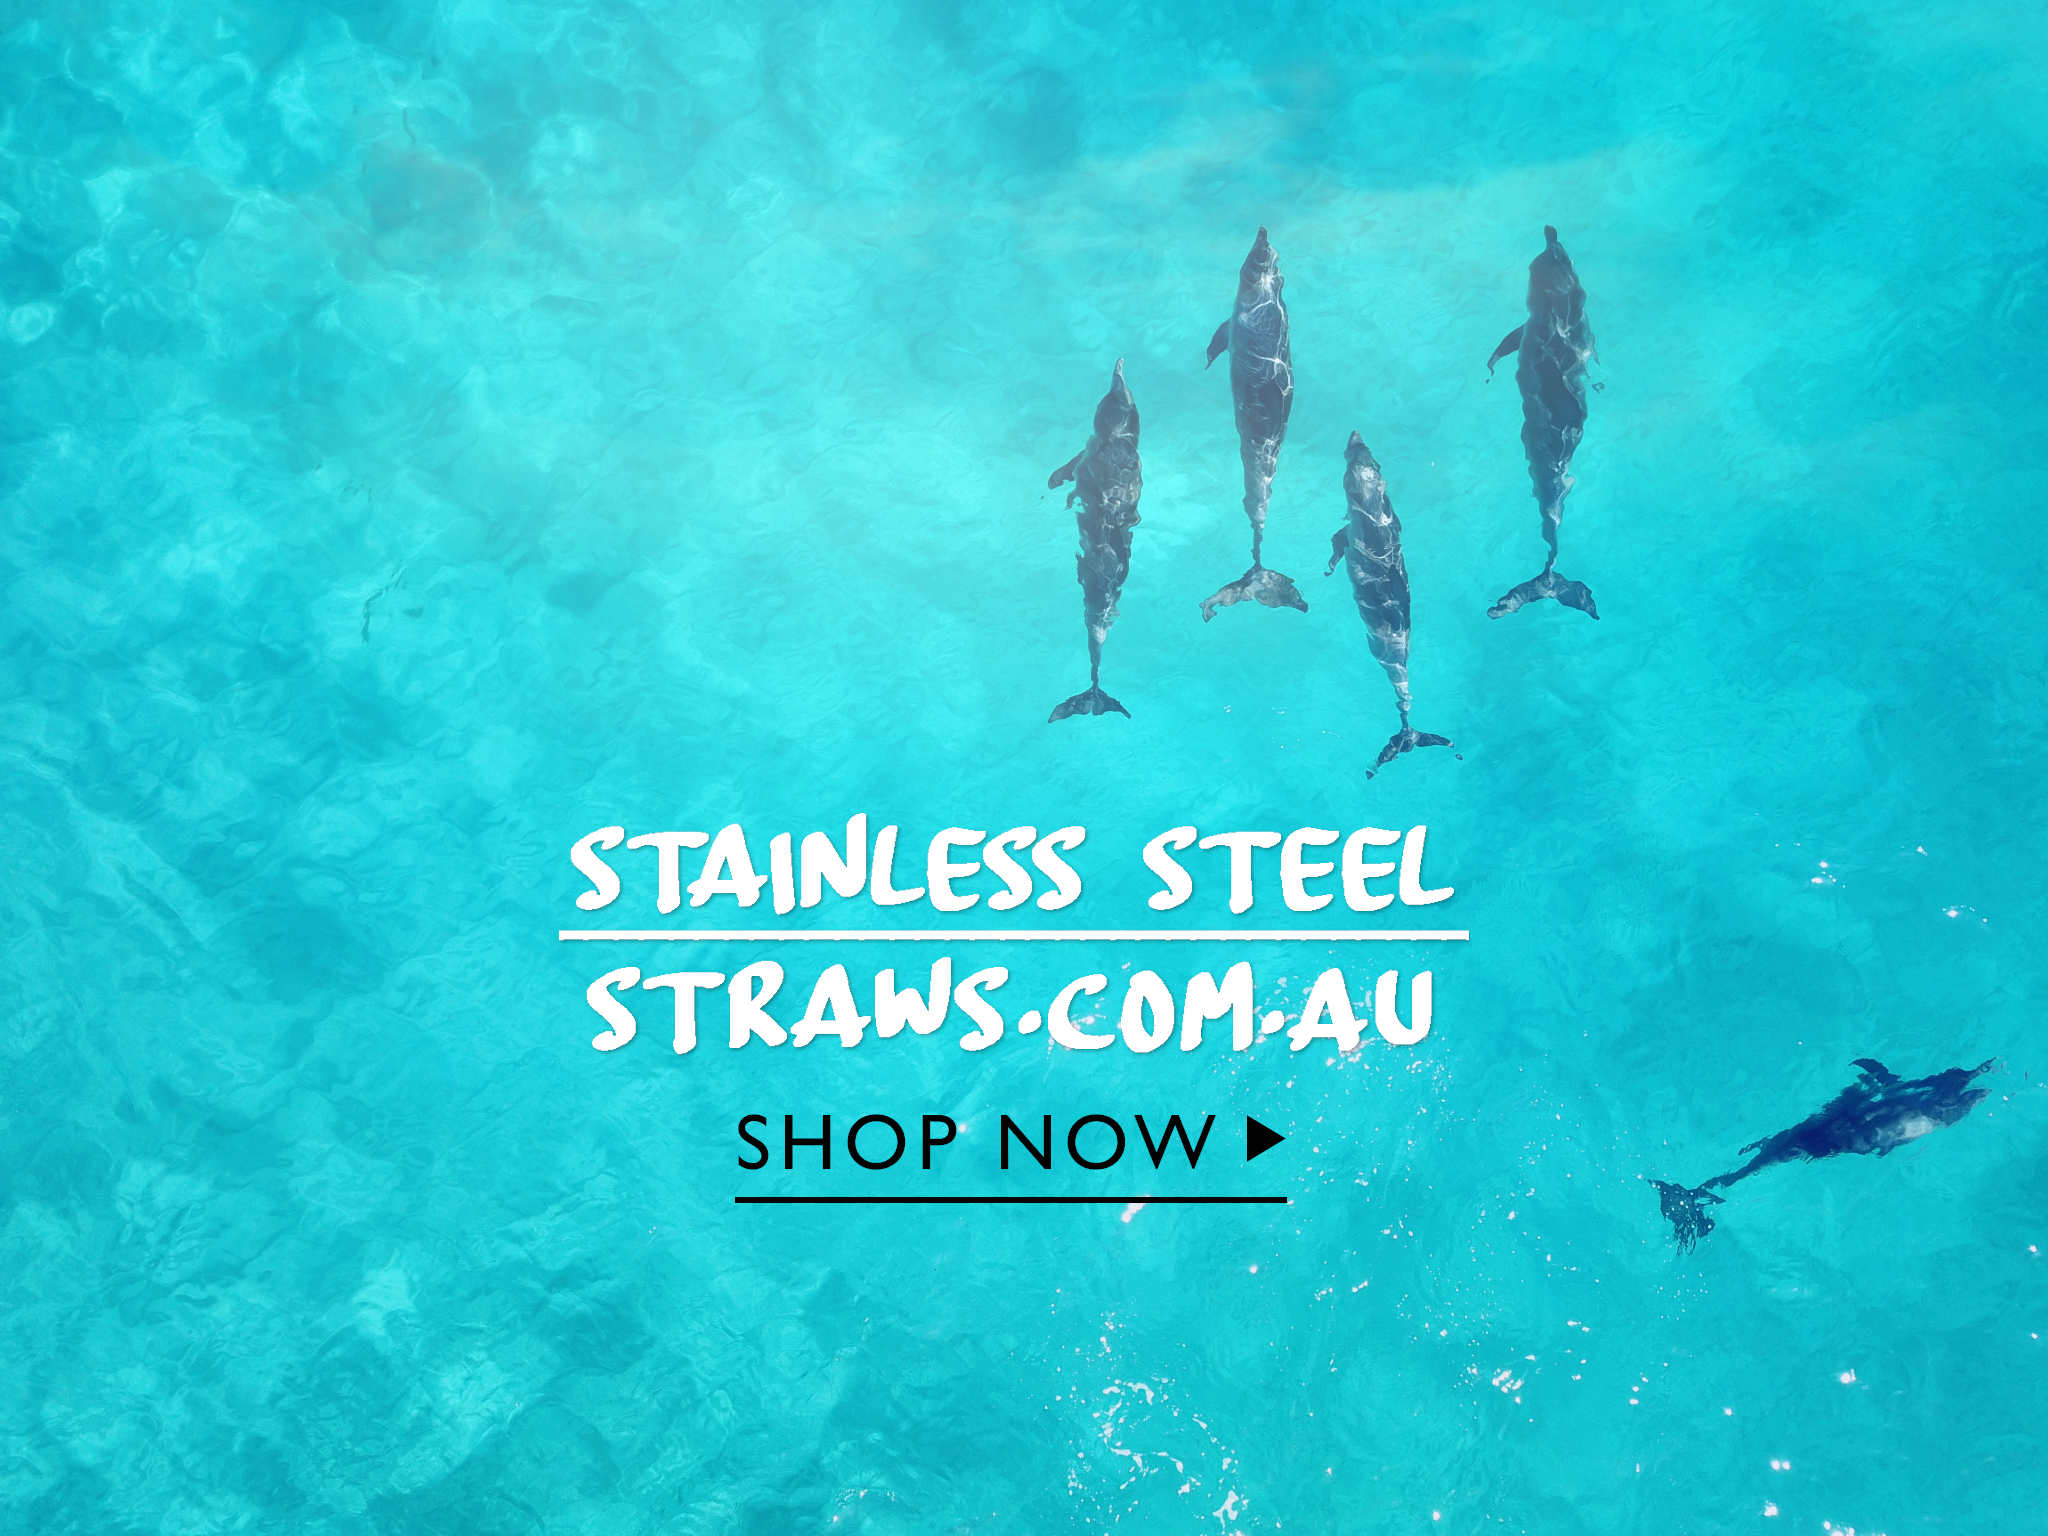 Stainless Steel straws Eco Friendly Gift Ideas